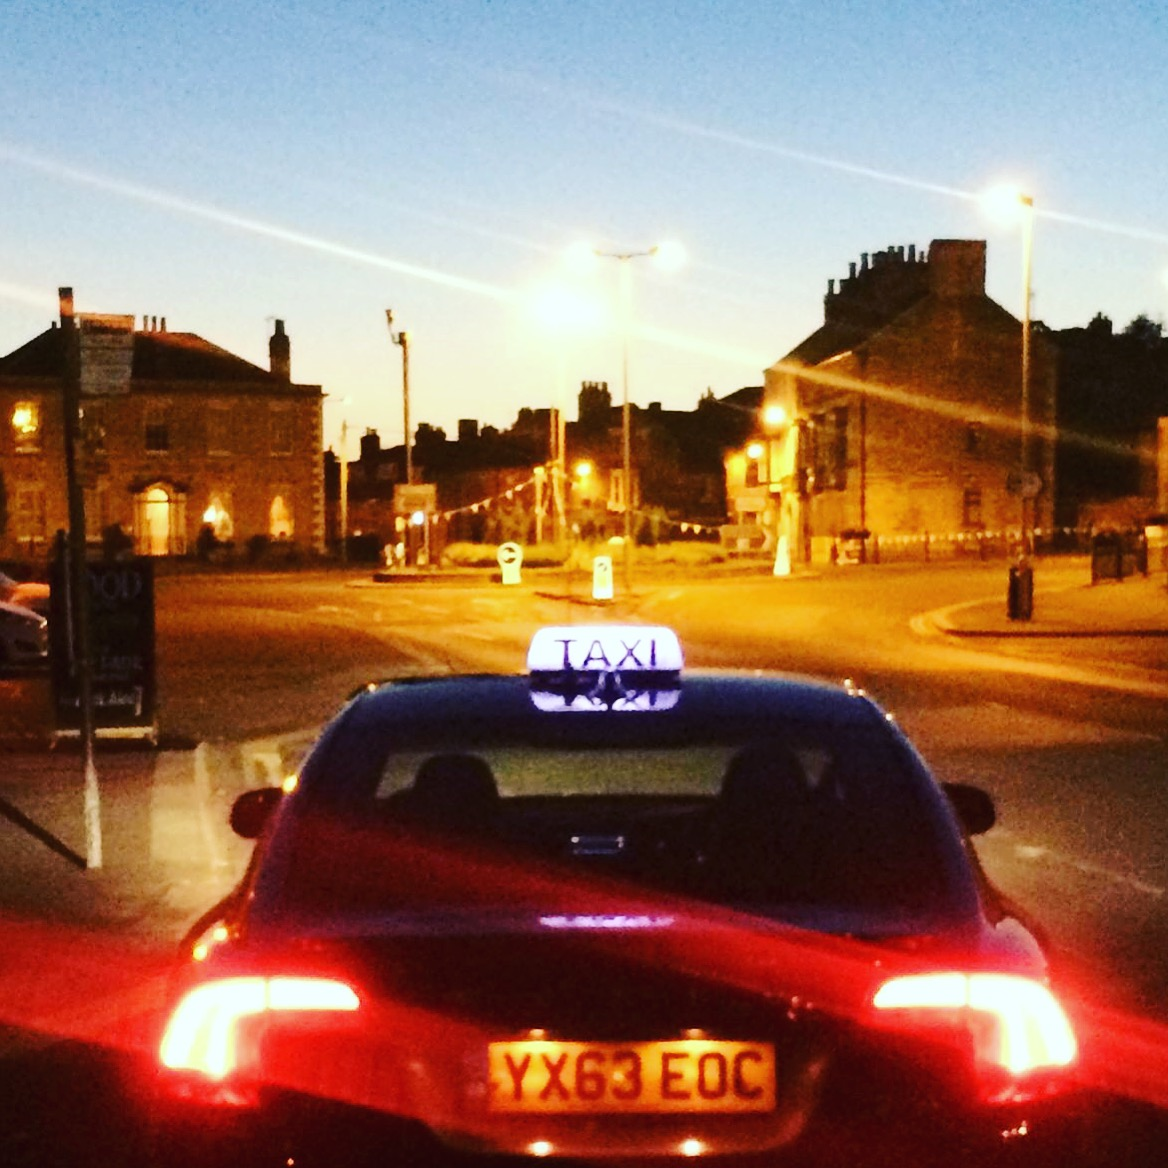 Taxi at night time in Pickering